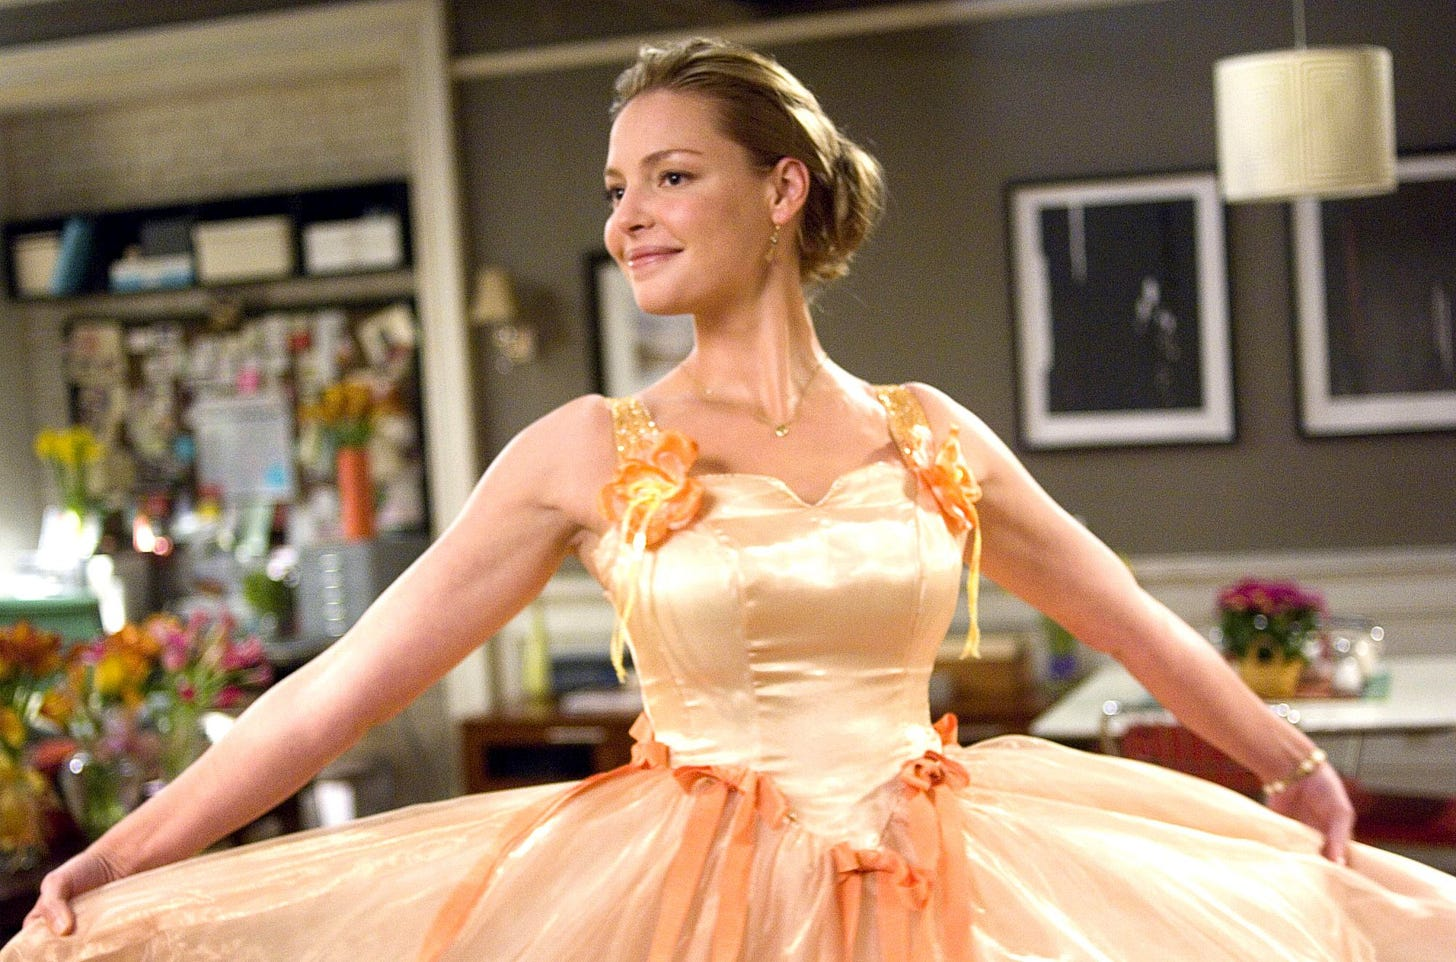 Katherine Heigl in an ugly peach gown in 27 Dresses